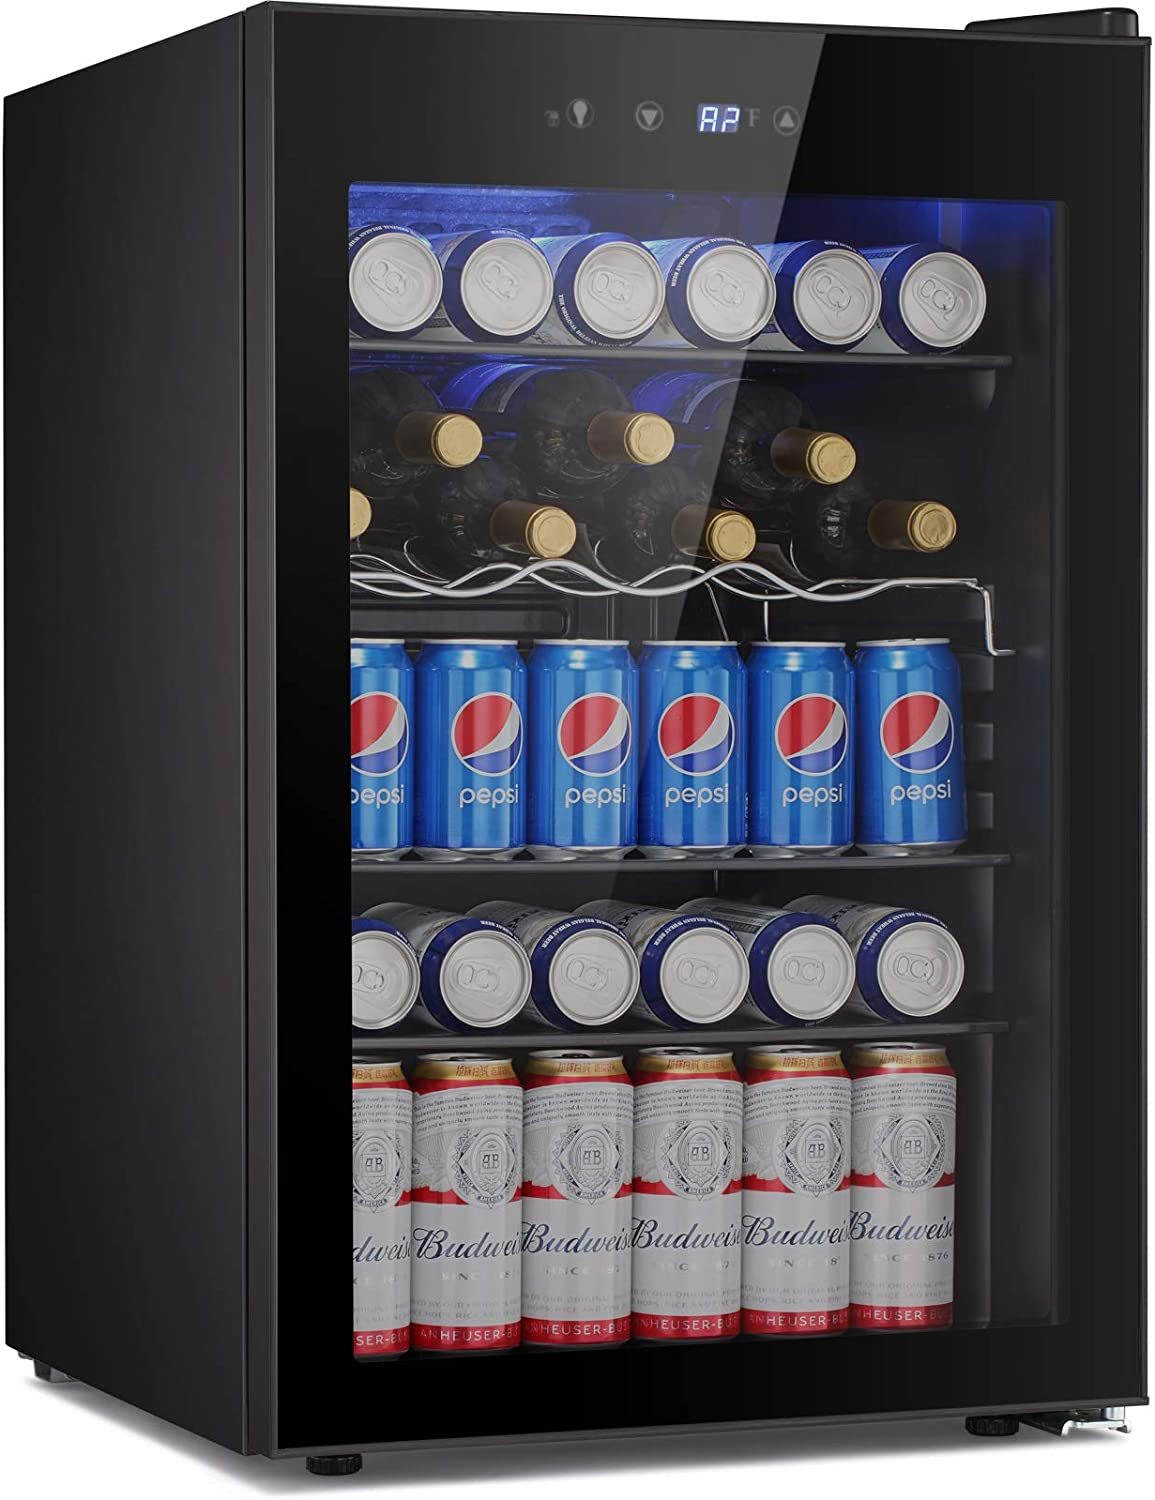 BOSSIN Beverage Refrigerator and Cooler, 145 Can Capacity with Smoky Gray Glass Door for Soda Beer or Wine,Compressor Touch Panel Digital Temperature Display for Home, Office, Bar(4.5 cu.ft)